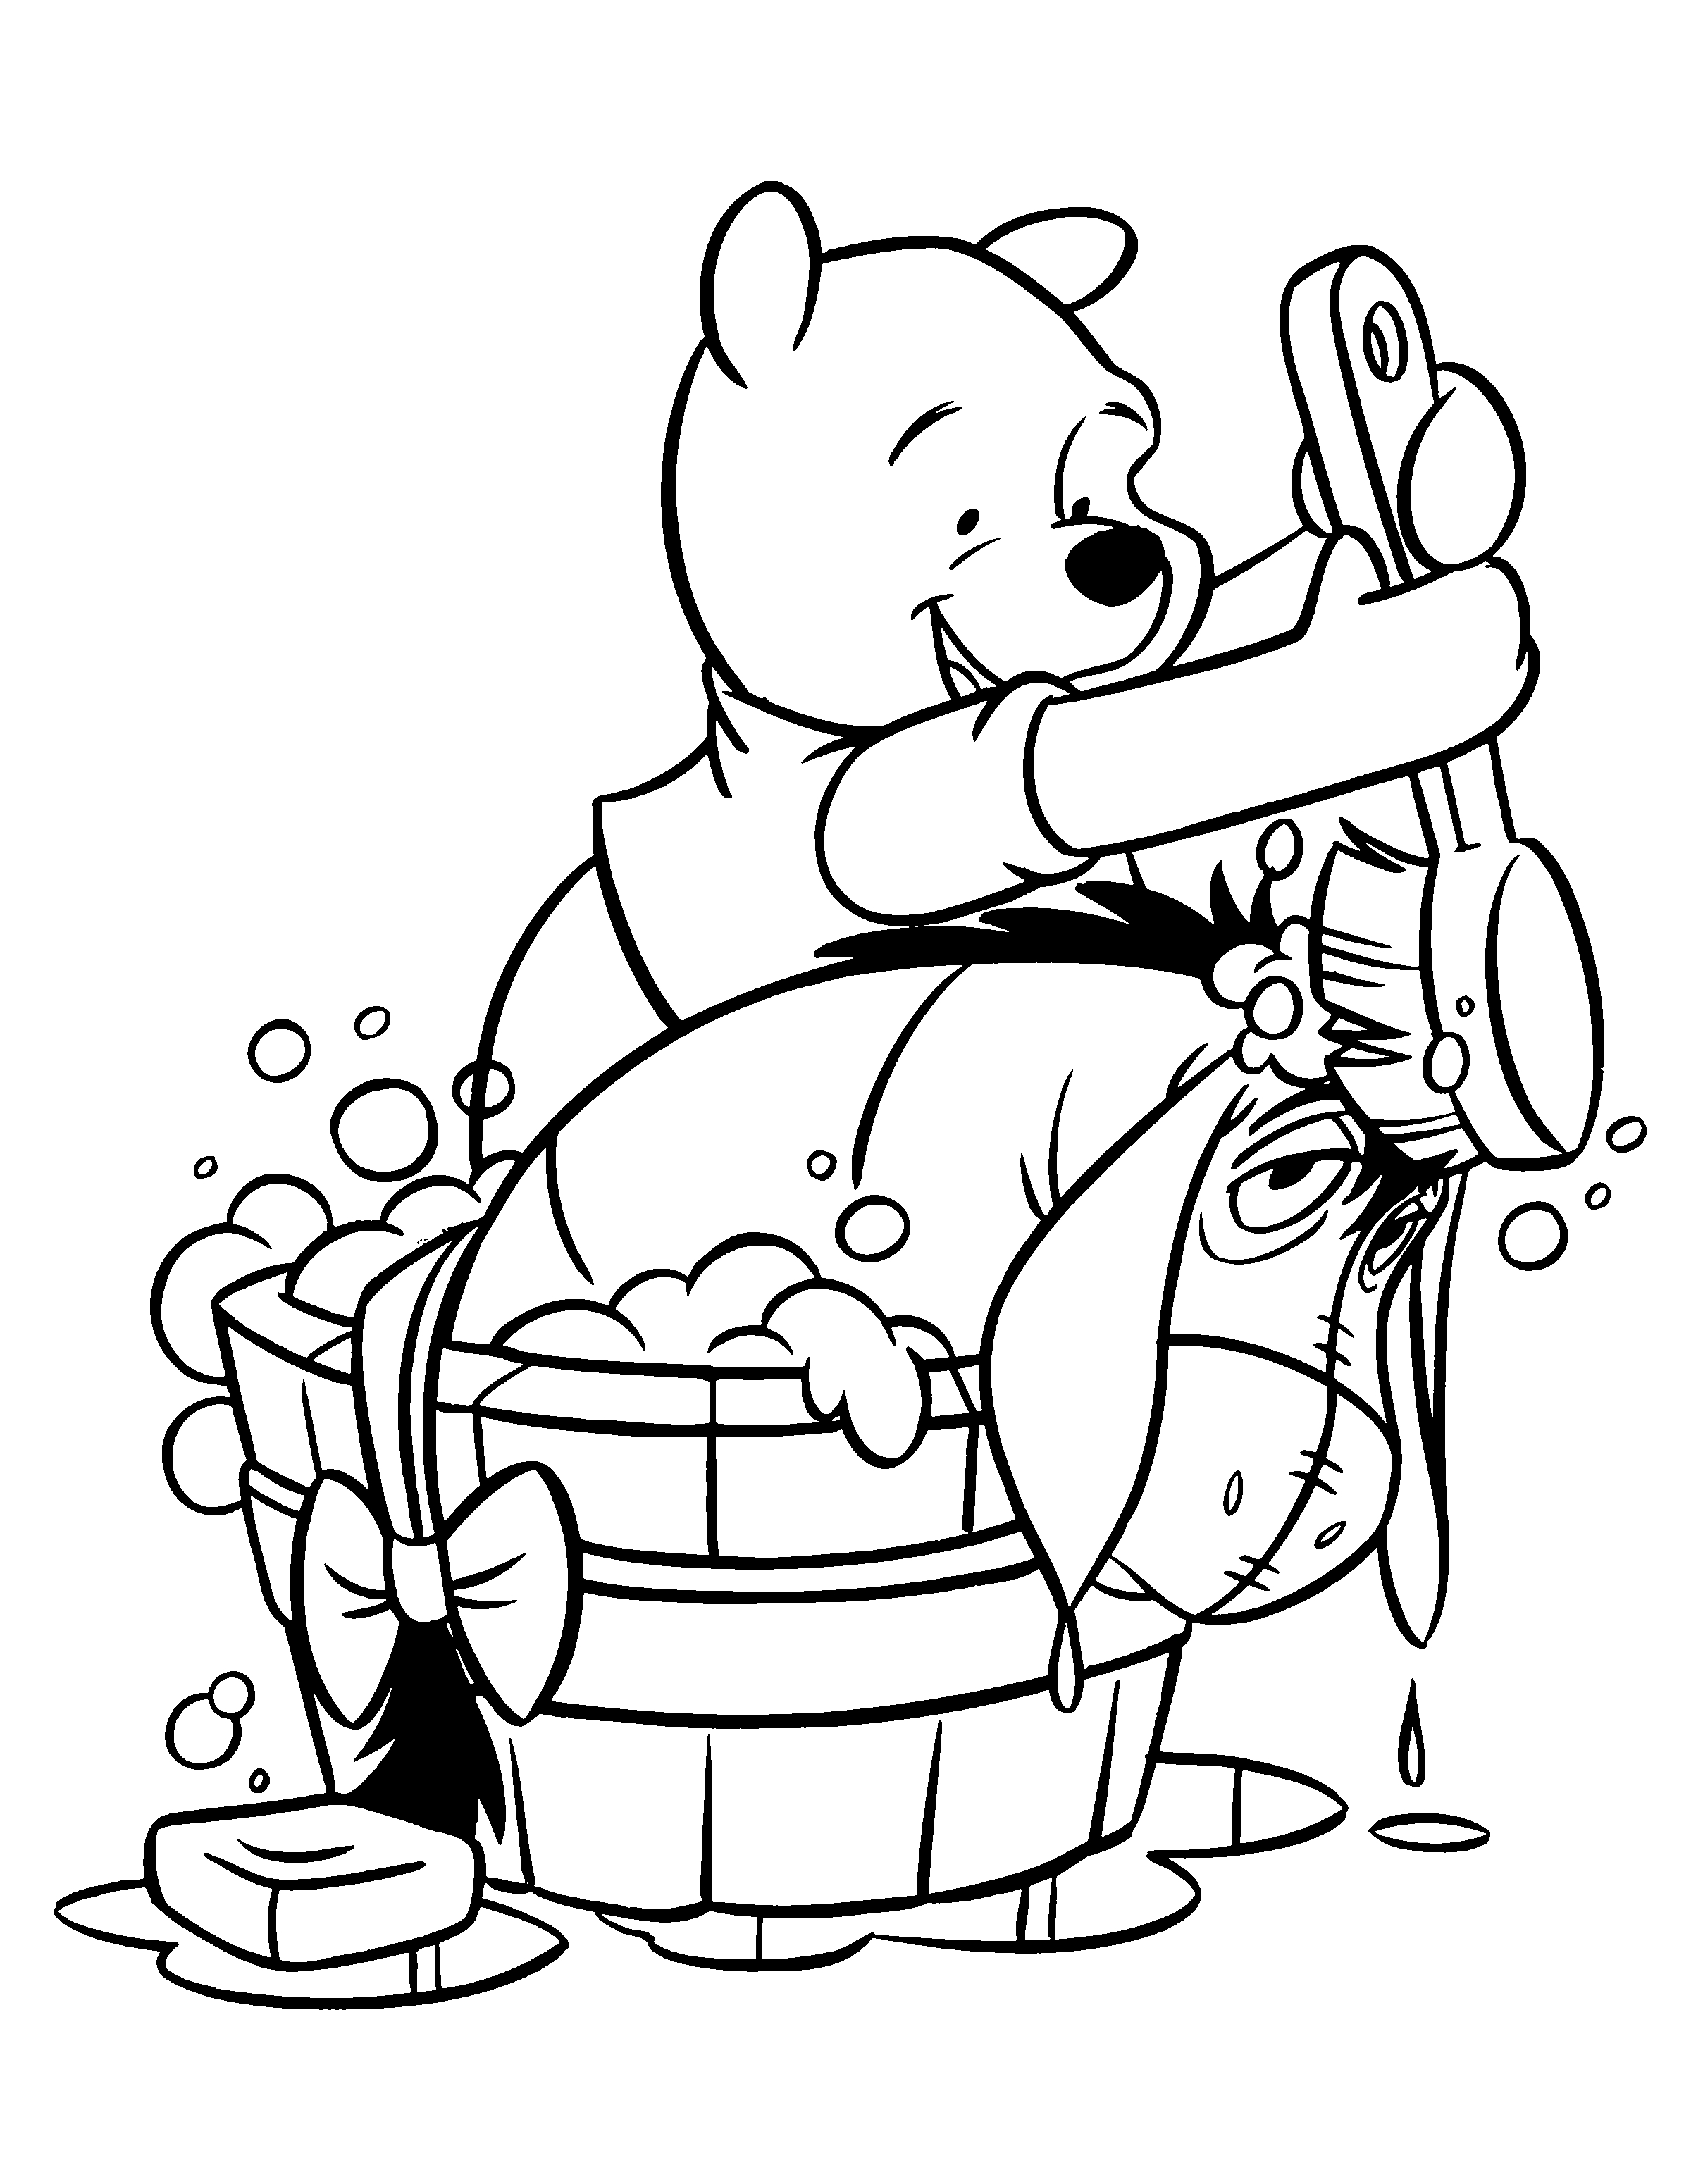 adult coloring pages people - winnie the pooh coloring pages